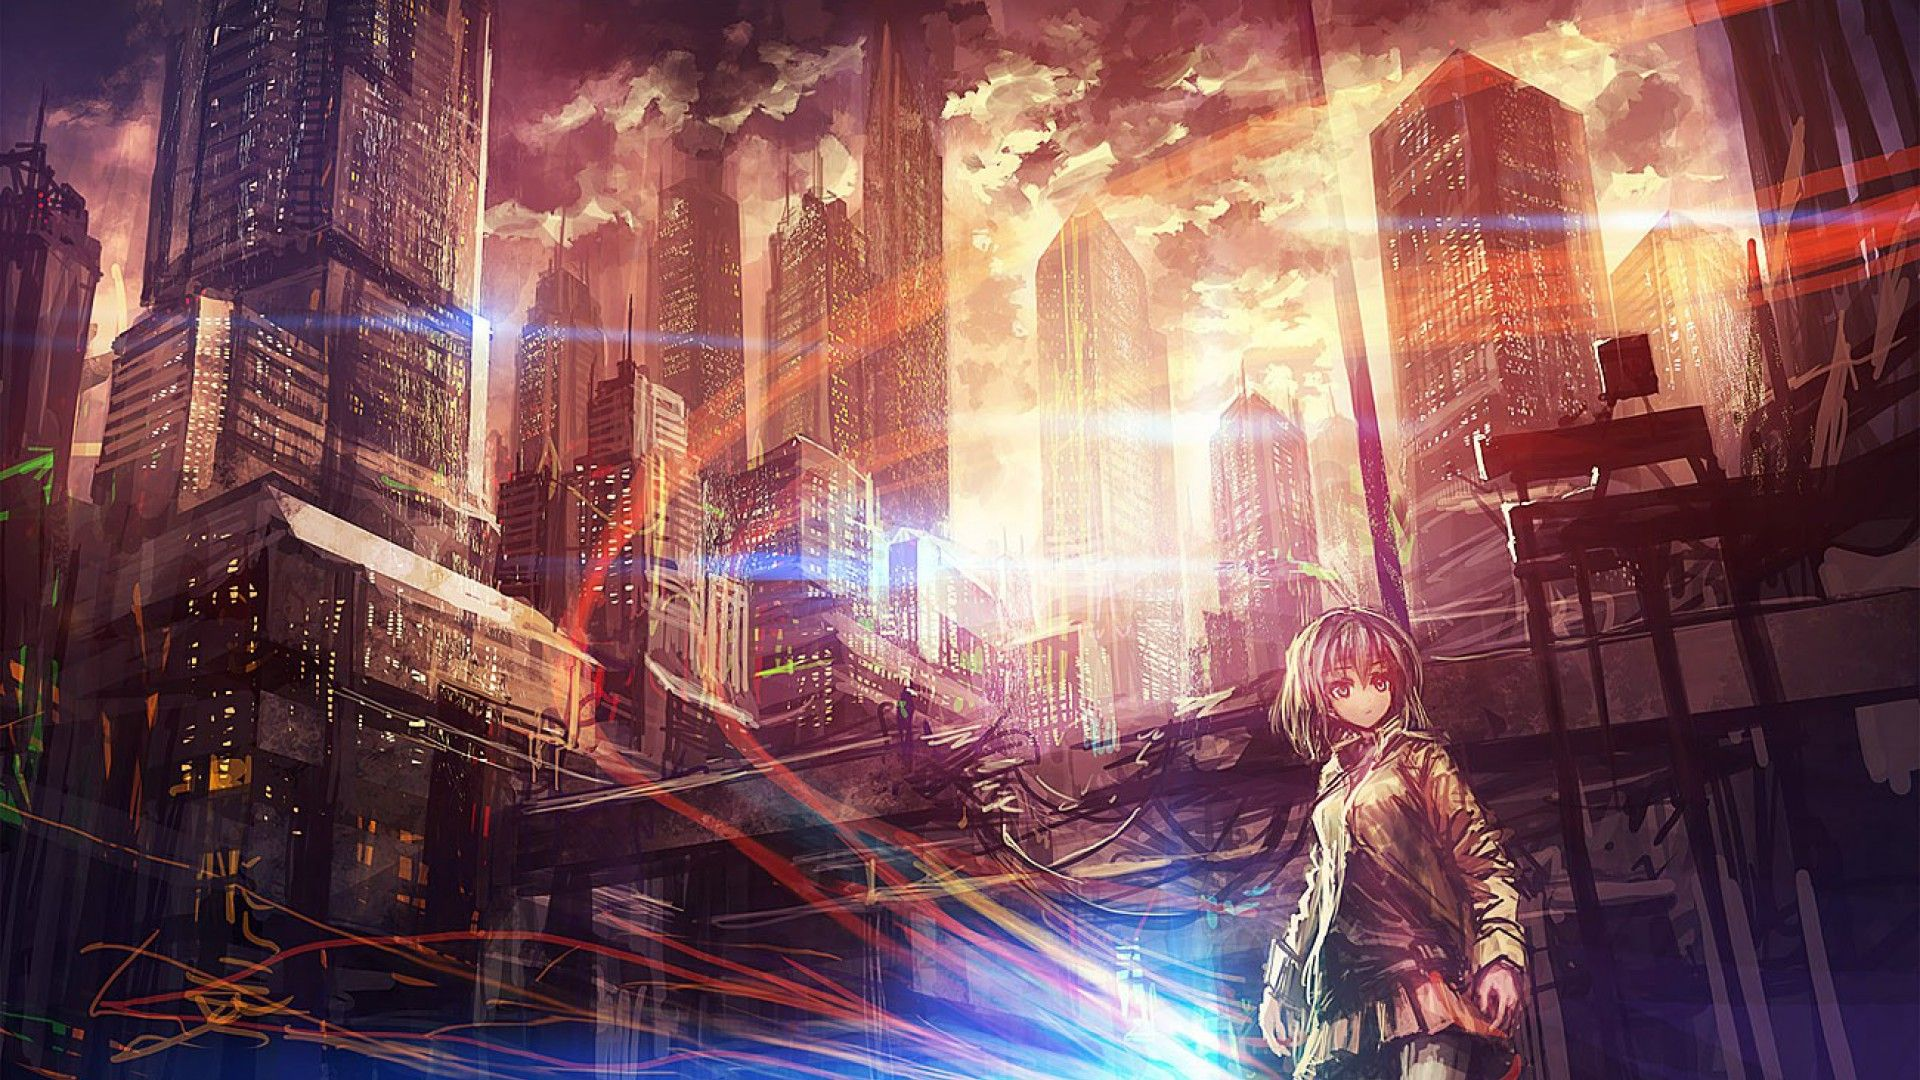 dark anime scenery high resolution hd wallpaper 2550e